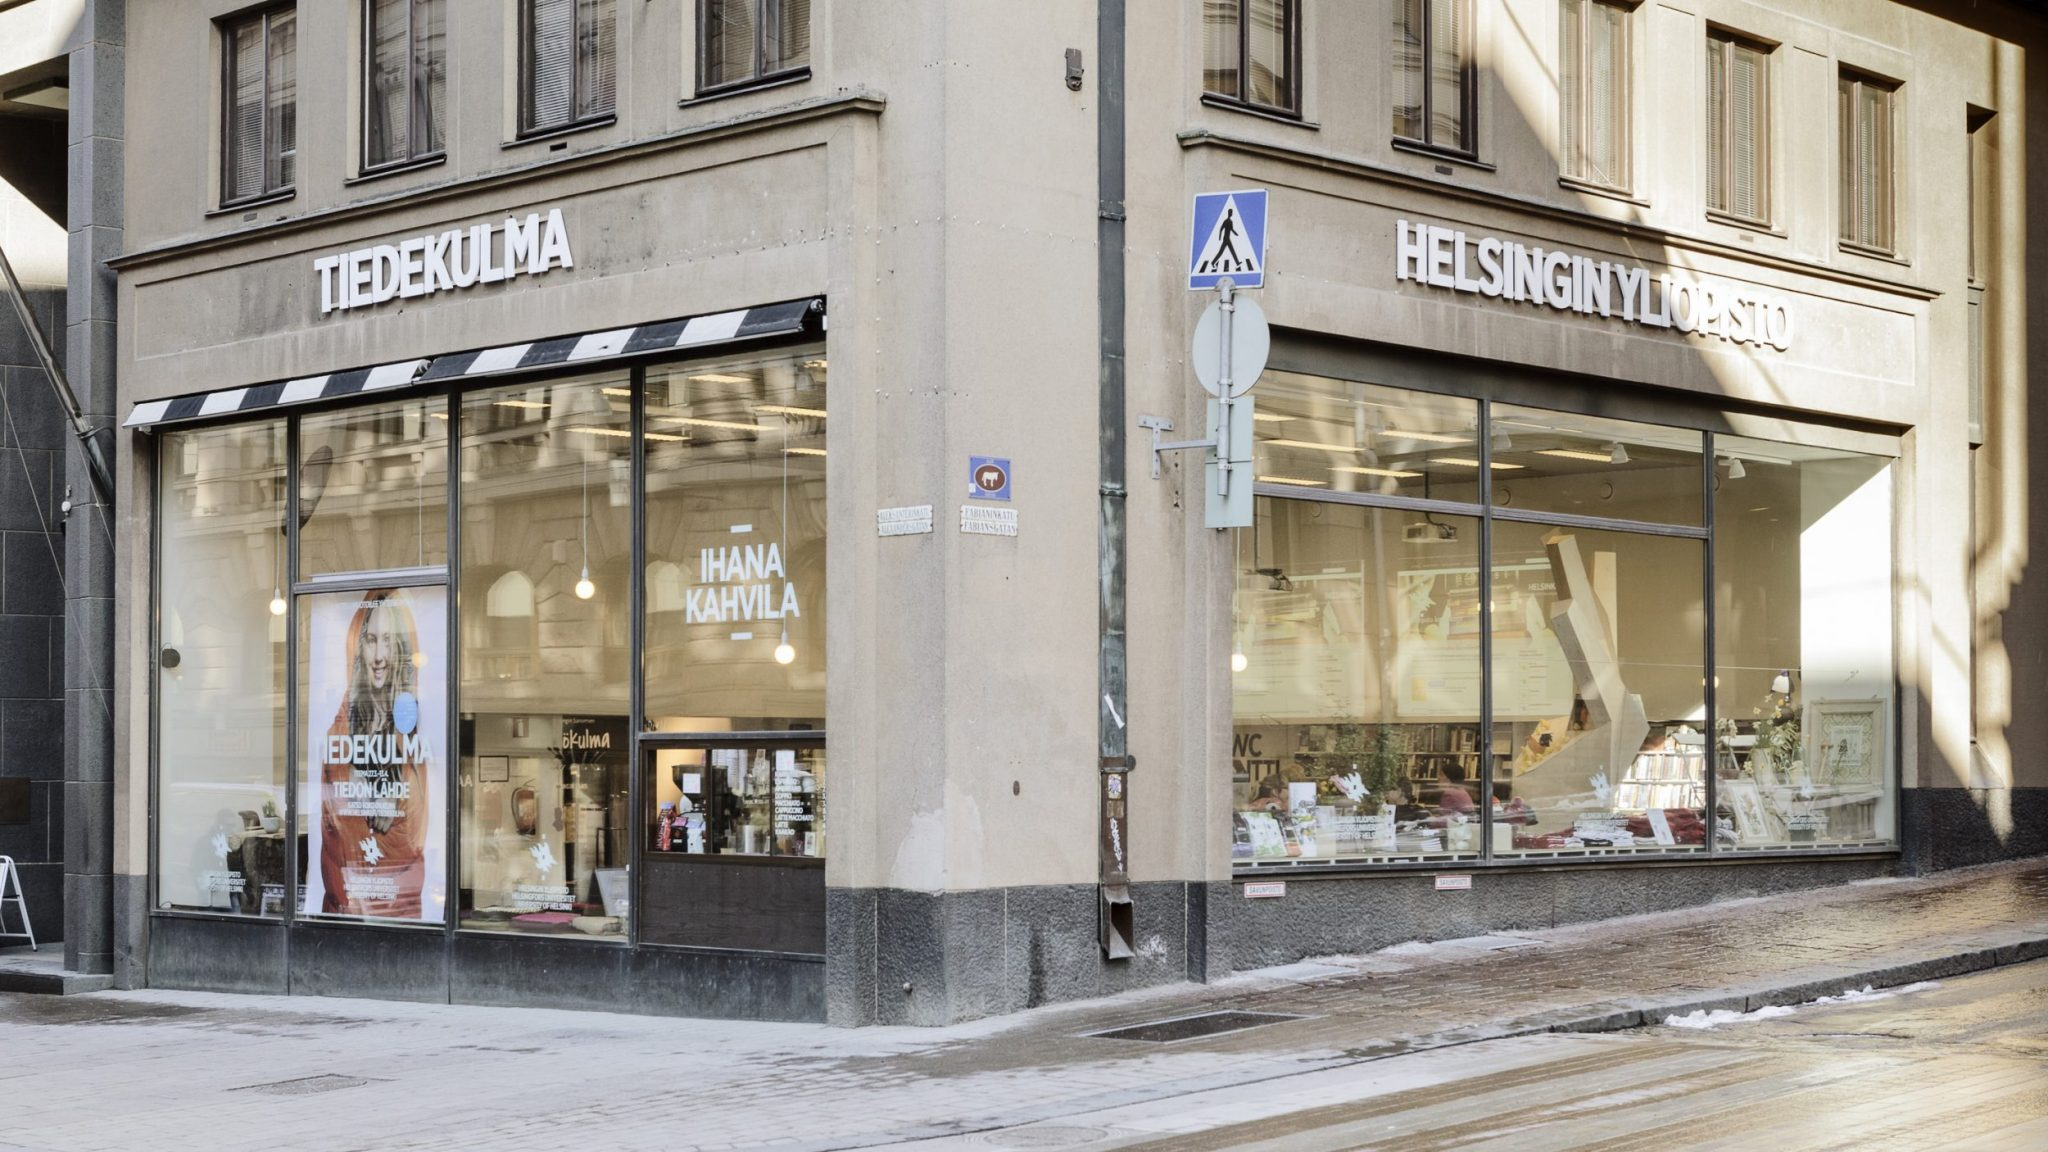 Think-Corner-pop-up-store-Aleksanterinkatu-Helsinki-GI-Project